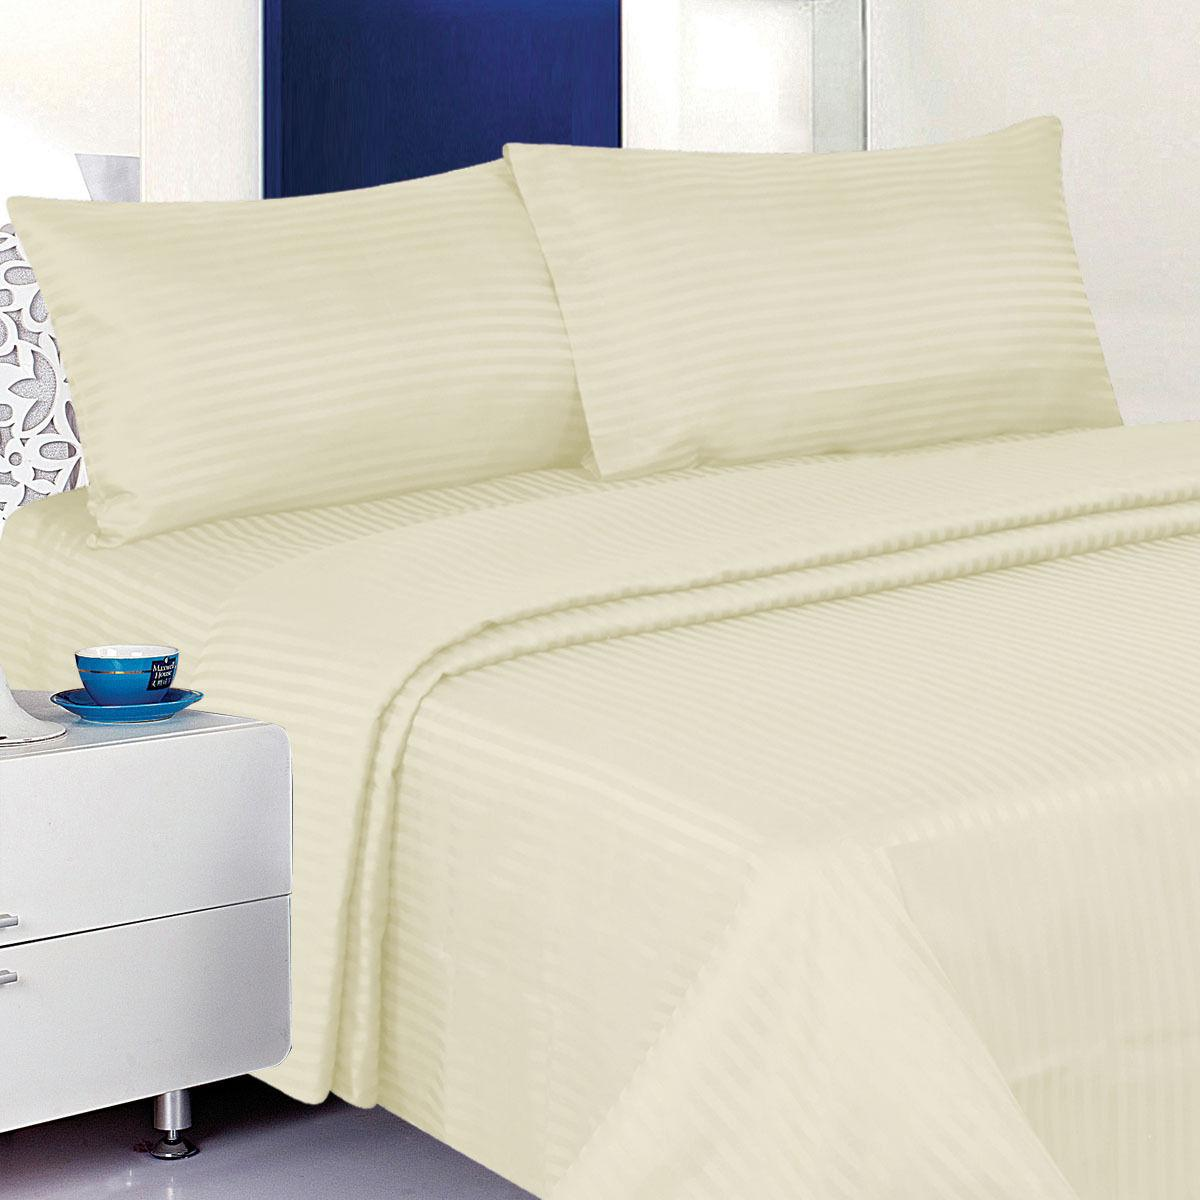 1800 Count 4 Bed Twin-Full-Queen-King